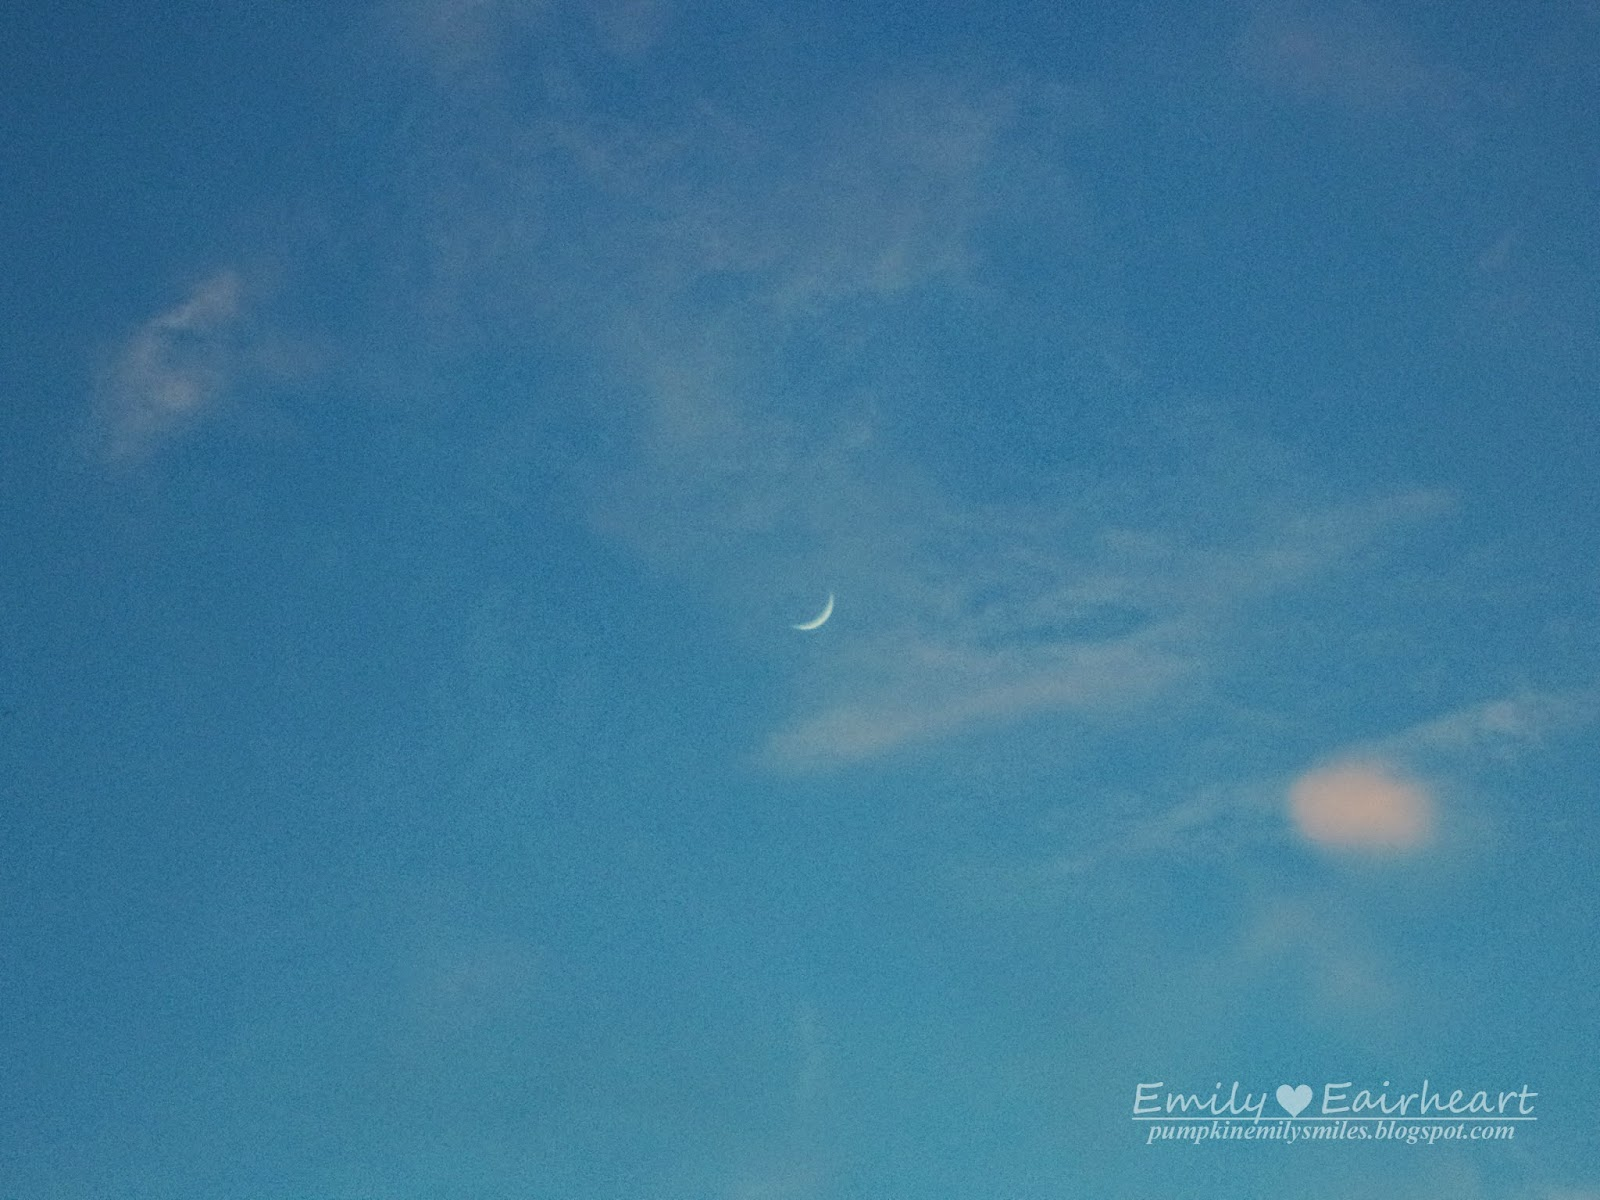 Crescent moon with pink clouds surrounding it.